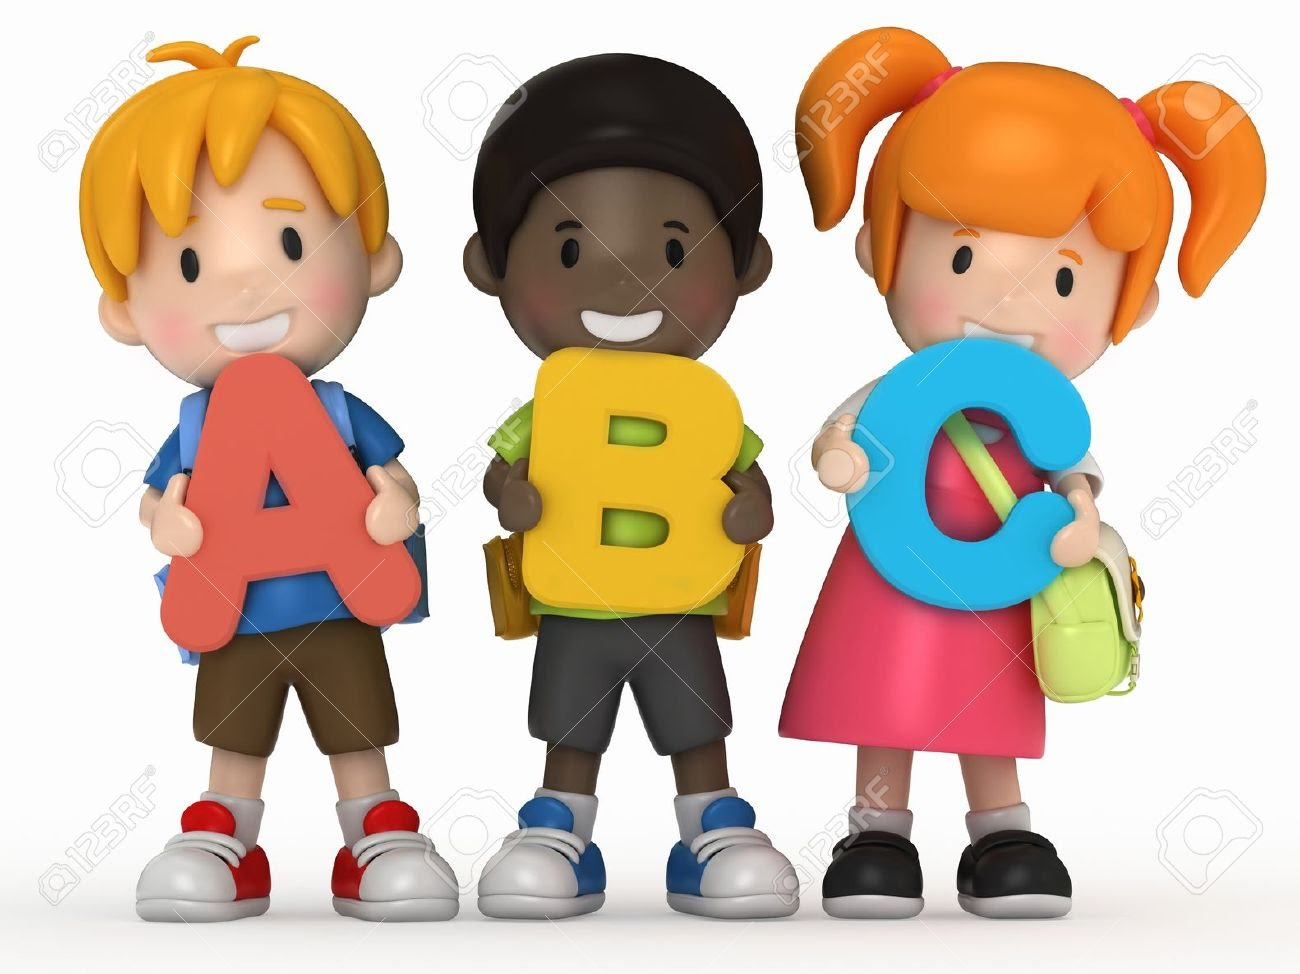 ABC For Kids: How To Learn Alphabet (A,B,C) For Kids.